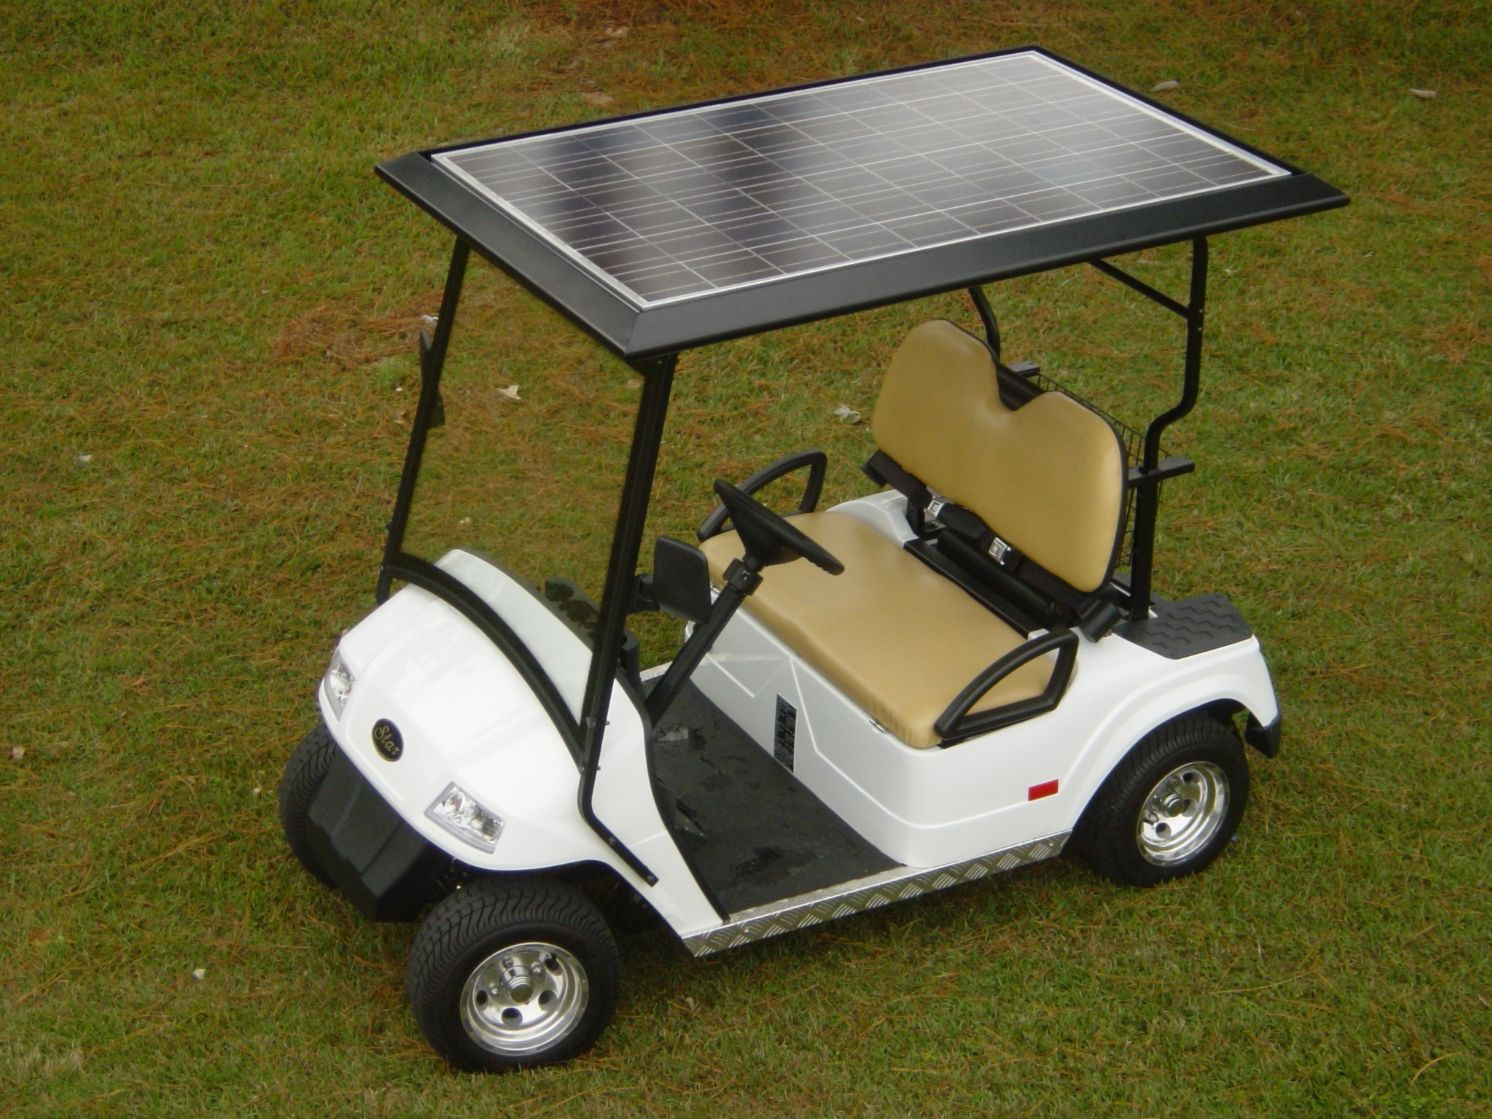 Solar Golf Cart Electric Hybrid SALE |Solar Charger Golf Cart.